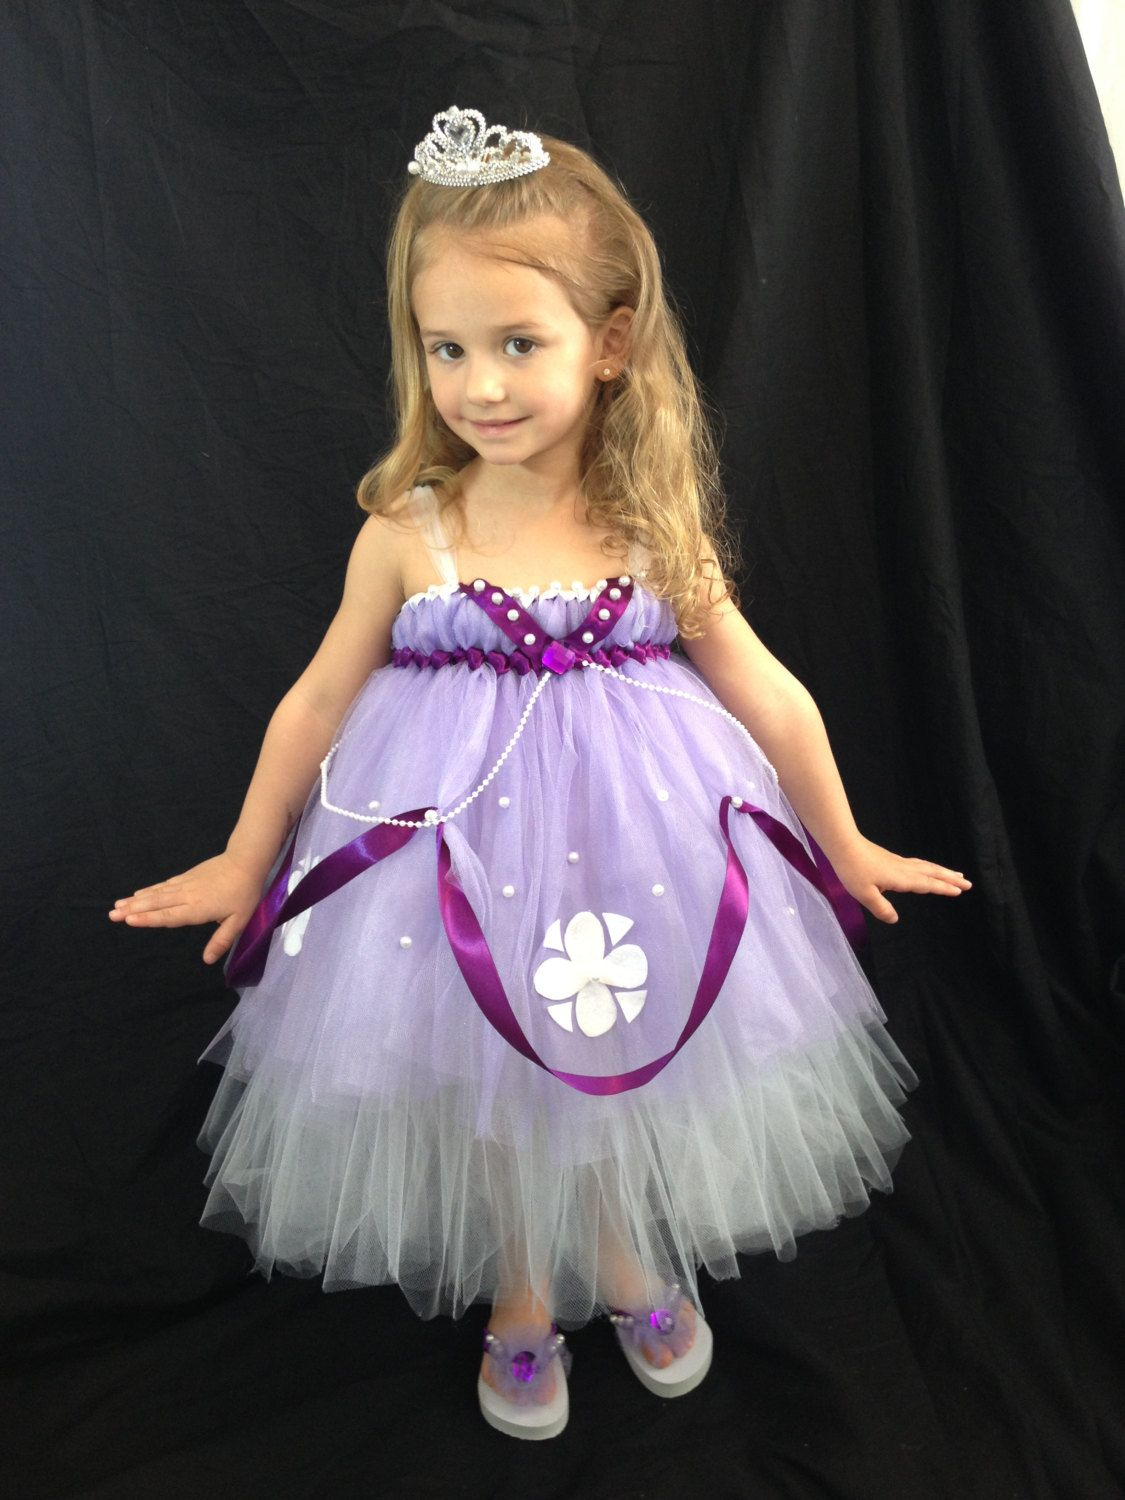 Sofia the First Tutu Dress | Madison | Pinterest | Tutu dresses ...